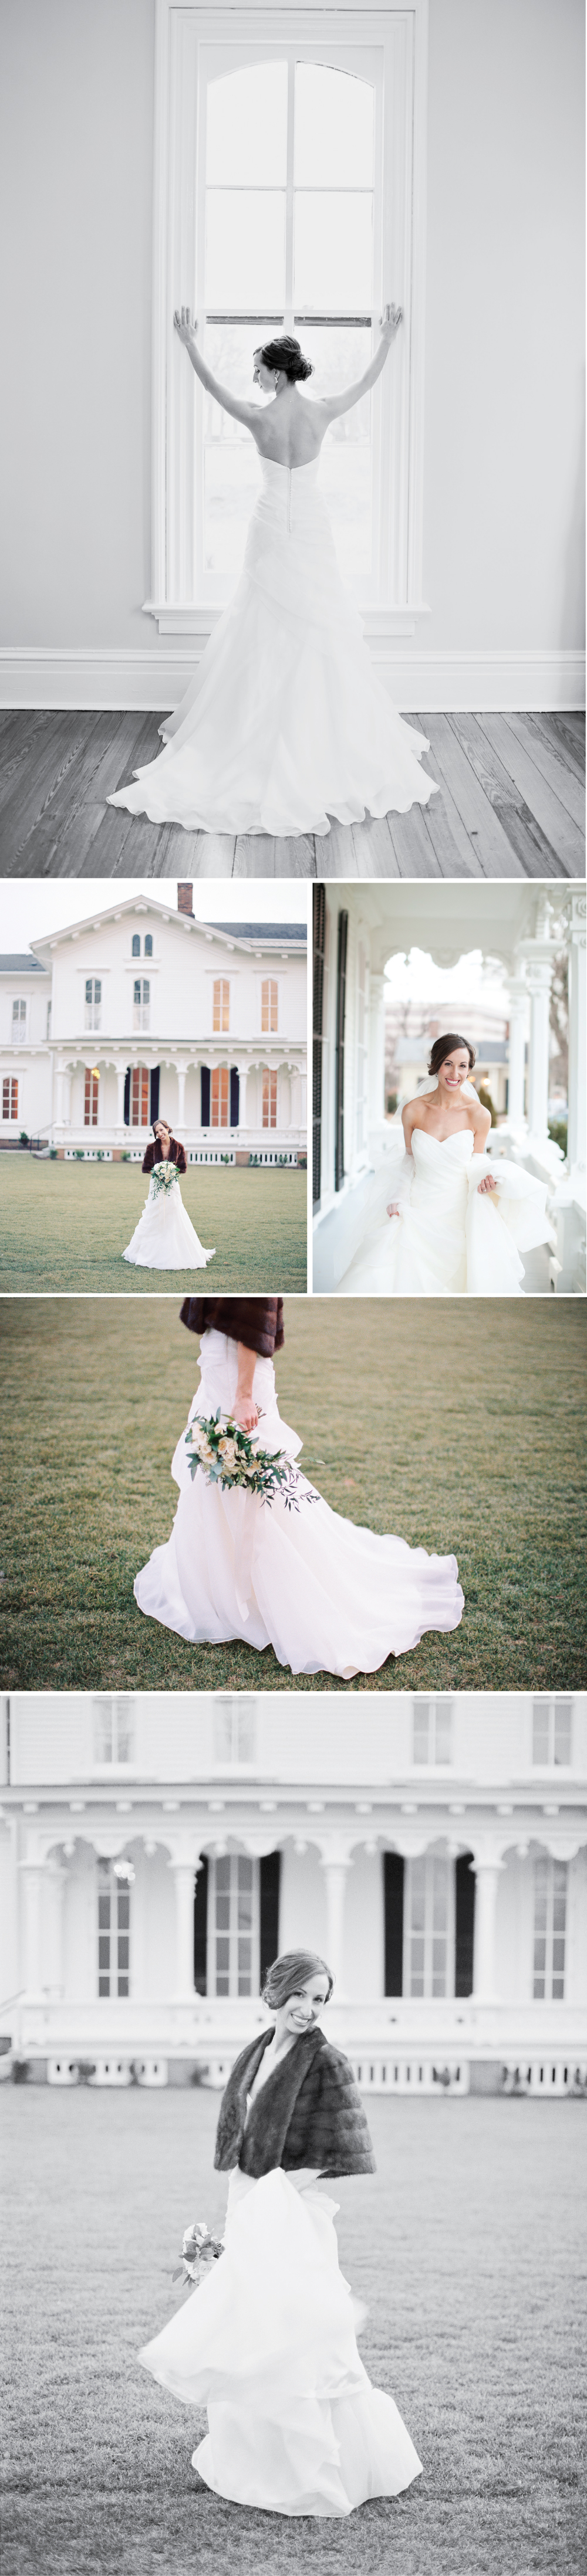 bridal-portraits-blog-post3.jpg